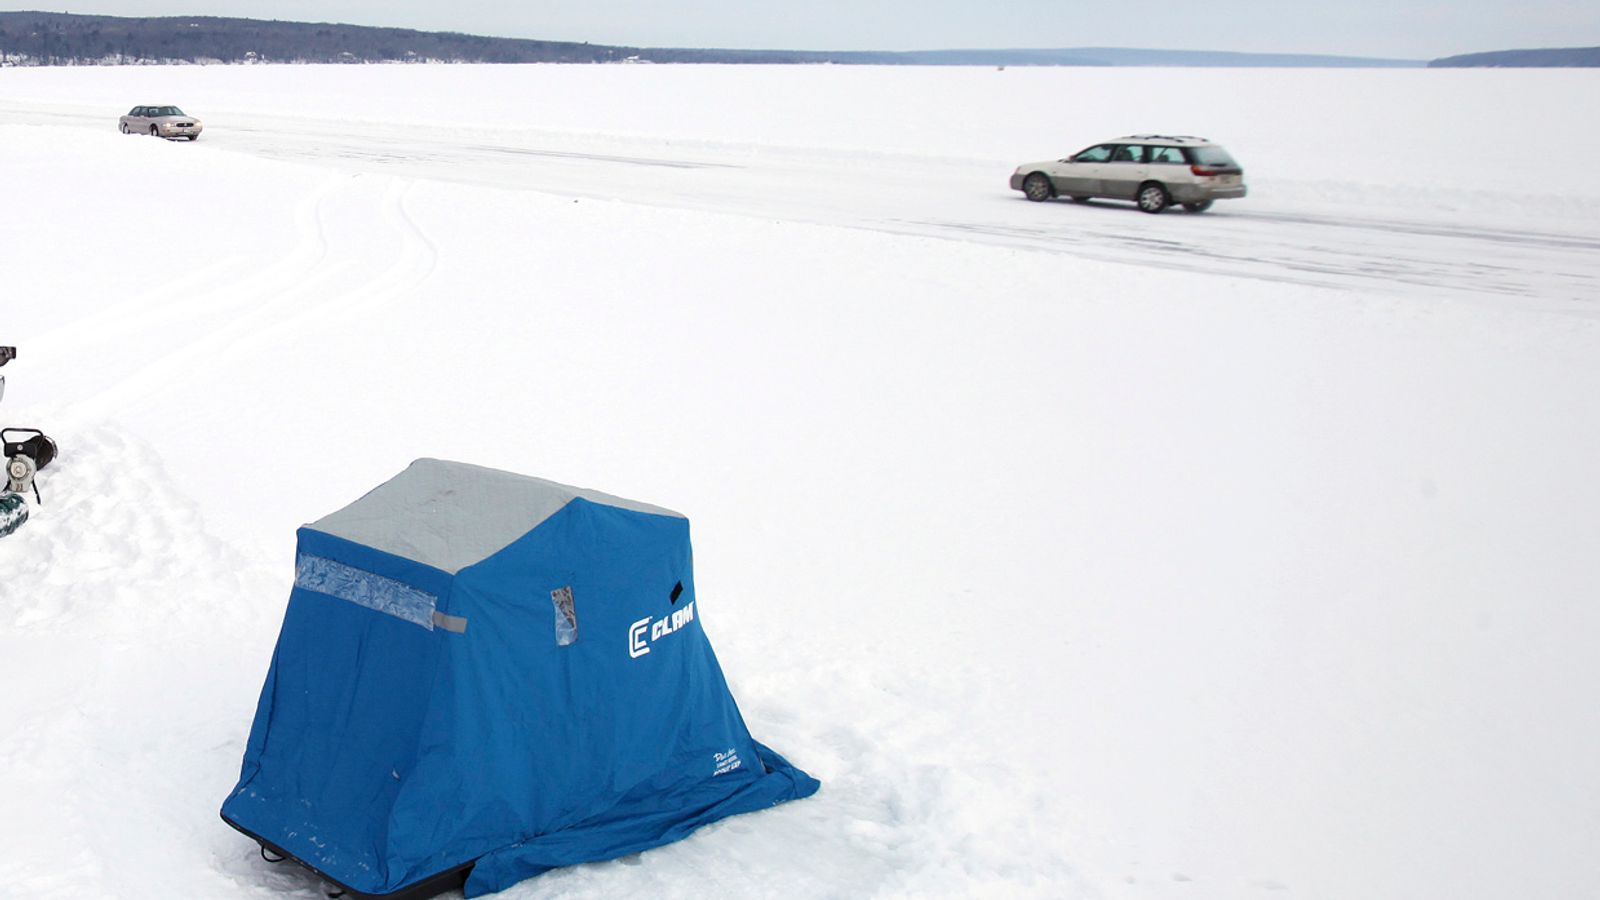 Lake Superior: 26 anglers rescued after ice drifts away from Minnesota shoreline